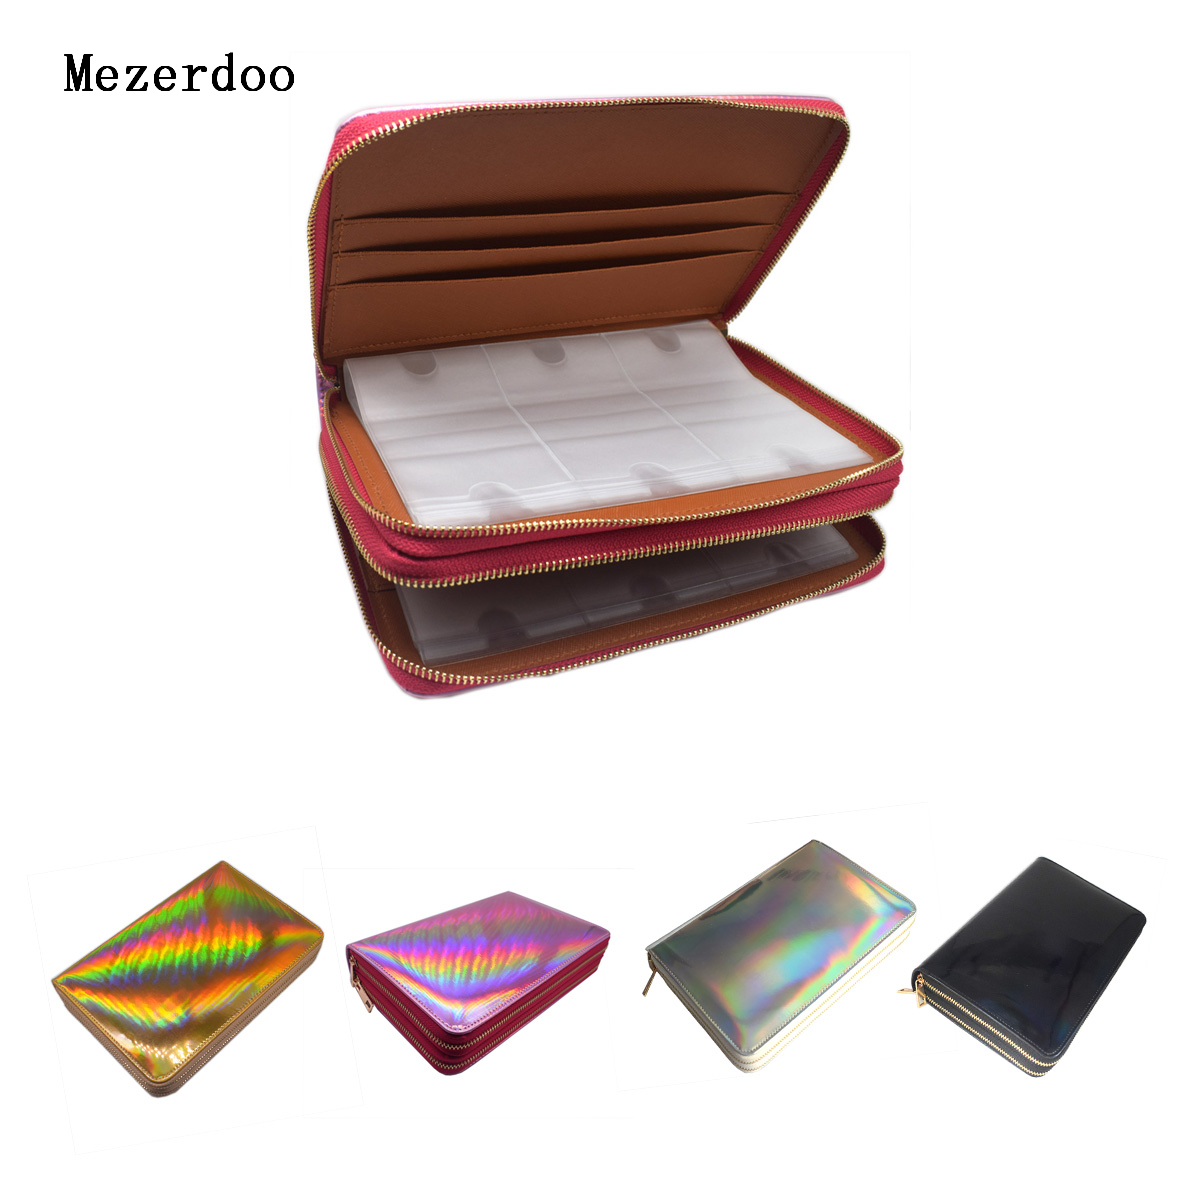 96 Slots Nail Stamping Plate Holder Case Rainbow Laser Style Rectangular Manicure Nail Art Plate Organizer with Double Zippers 10pcs nail art stamping printing skull style stainless steel stamp for diy manicure template stencils jh461 10pcs